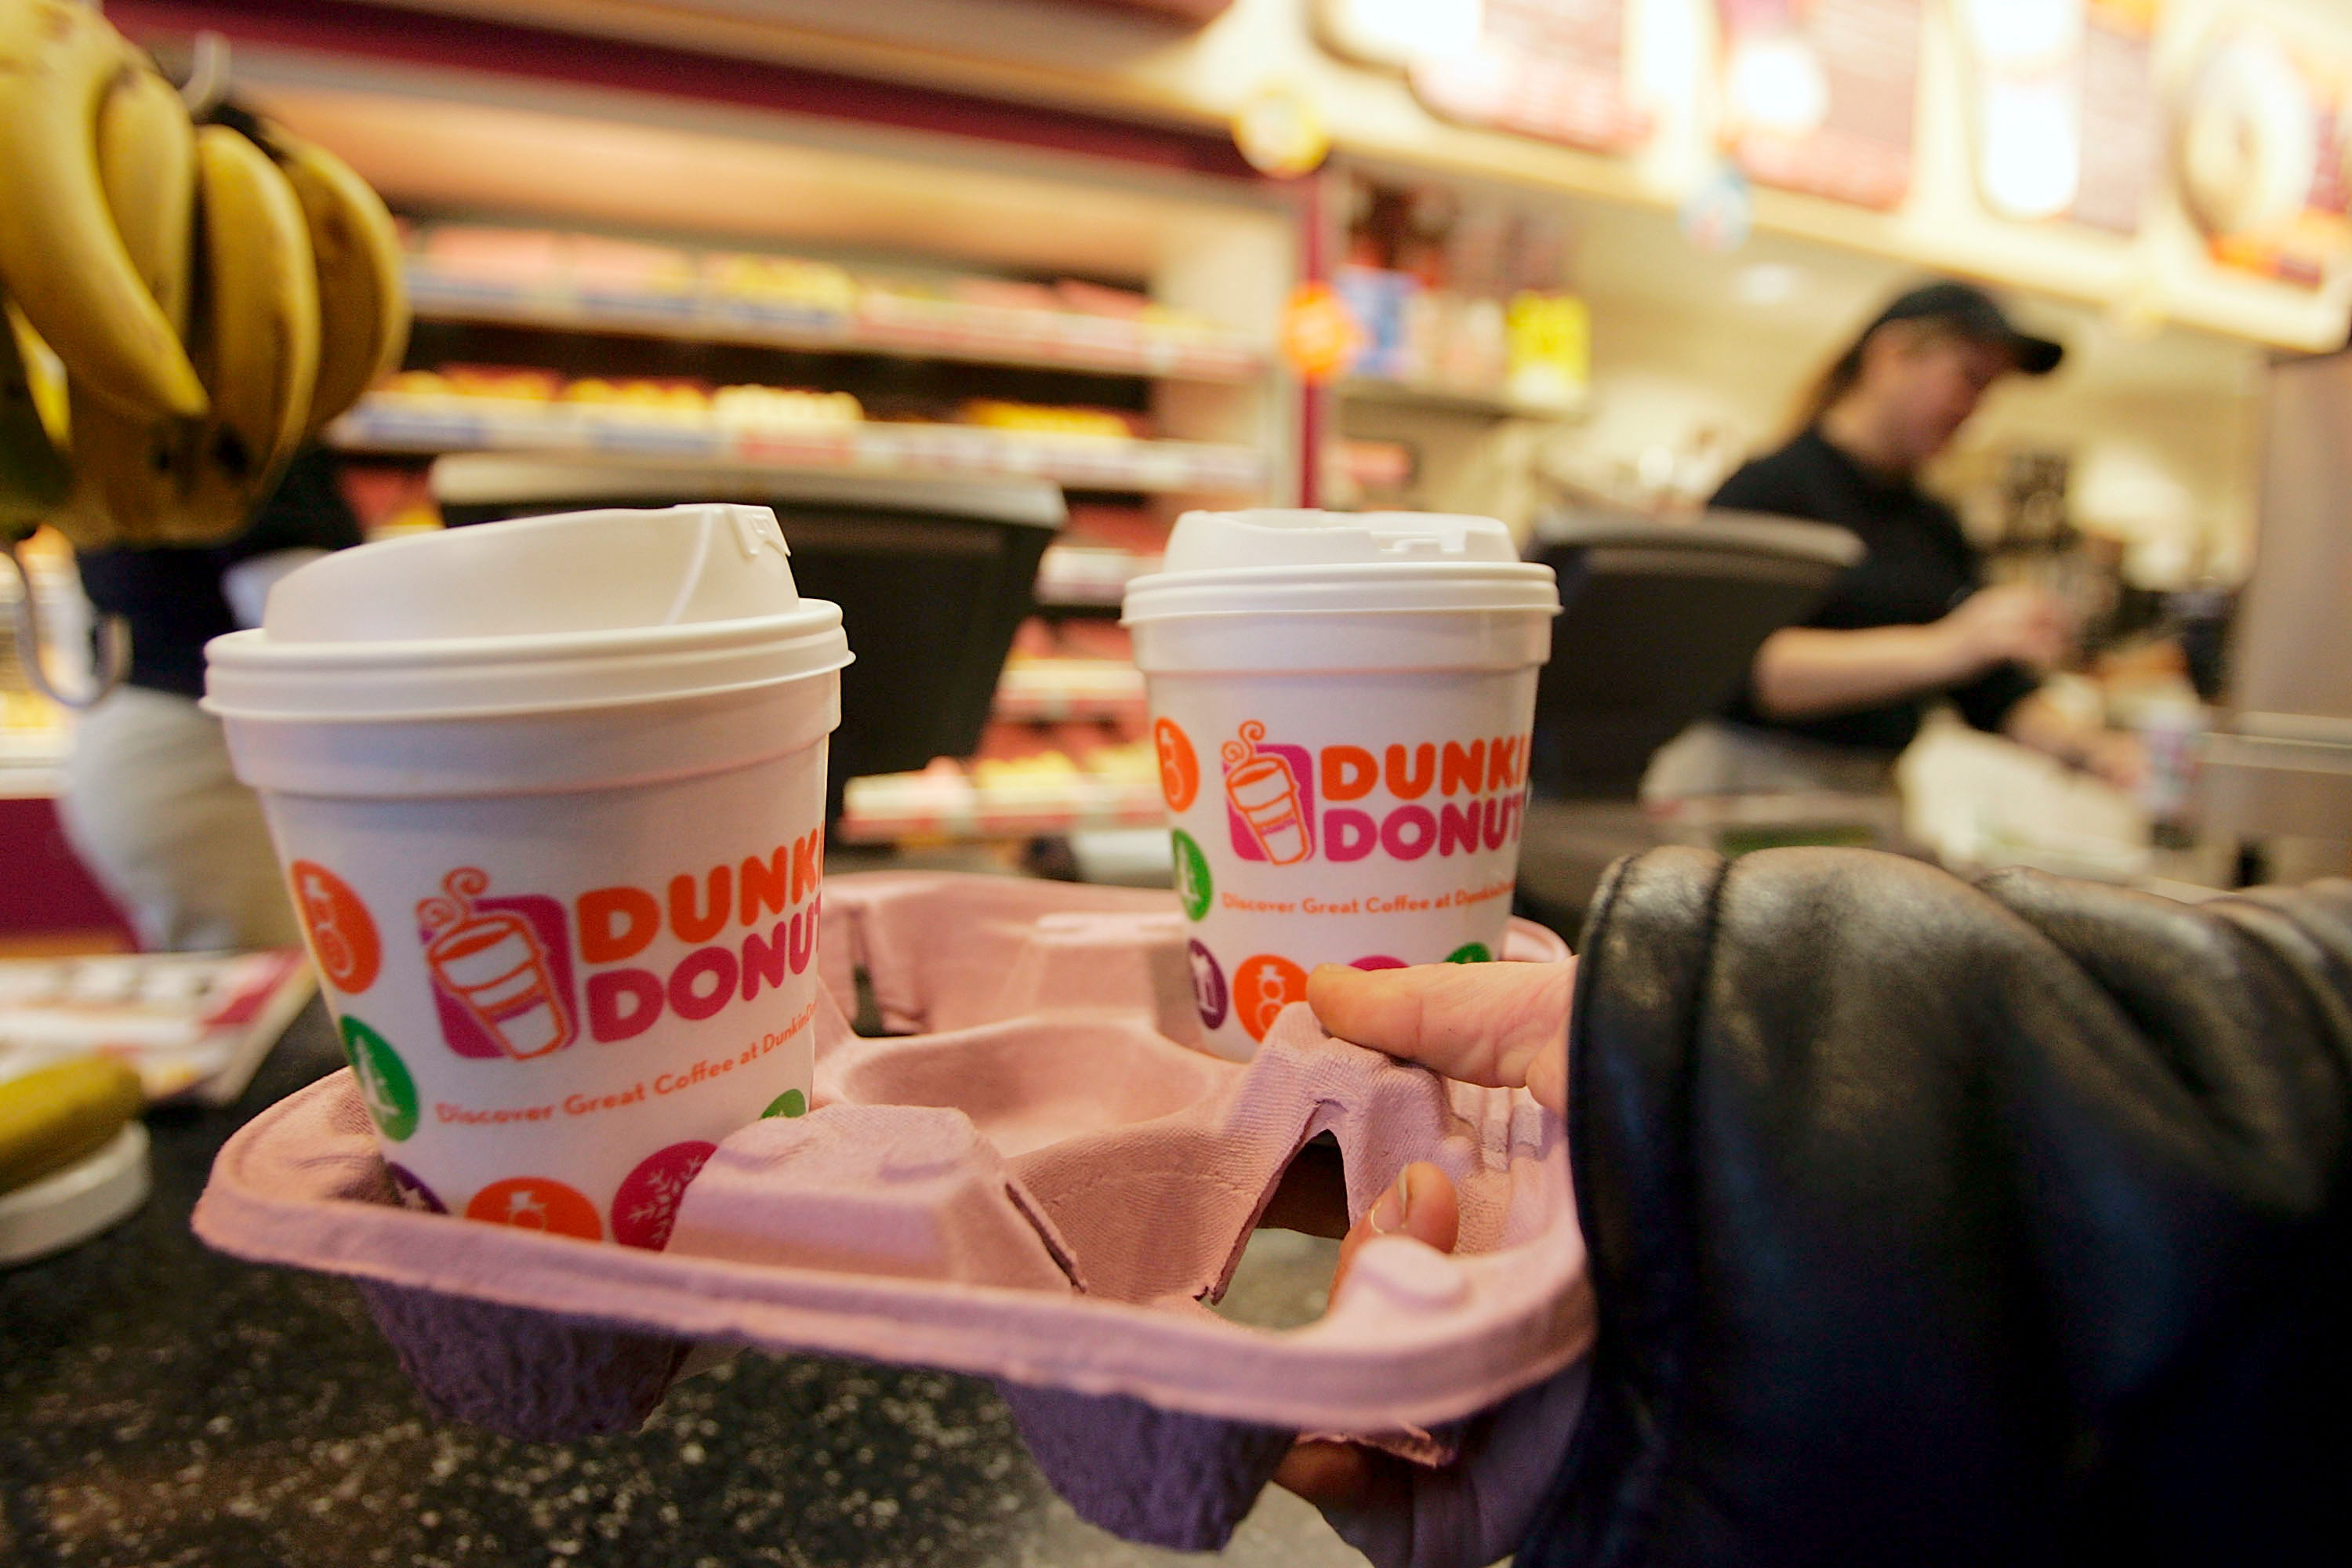 It costs a lot for a huge company like Dunkin' Donuts to change its name. So what's the payoff?